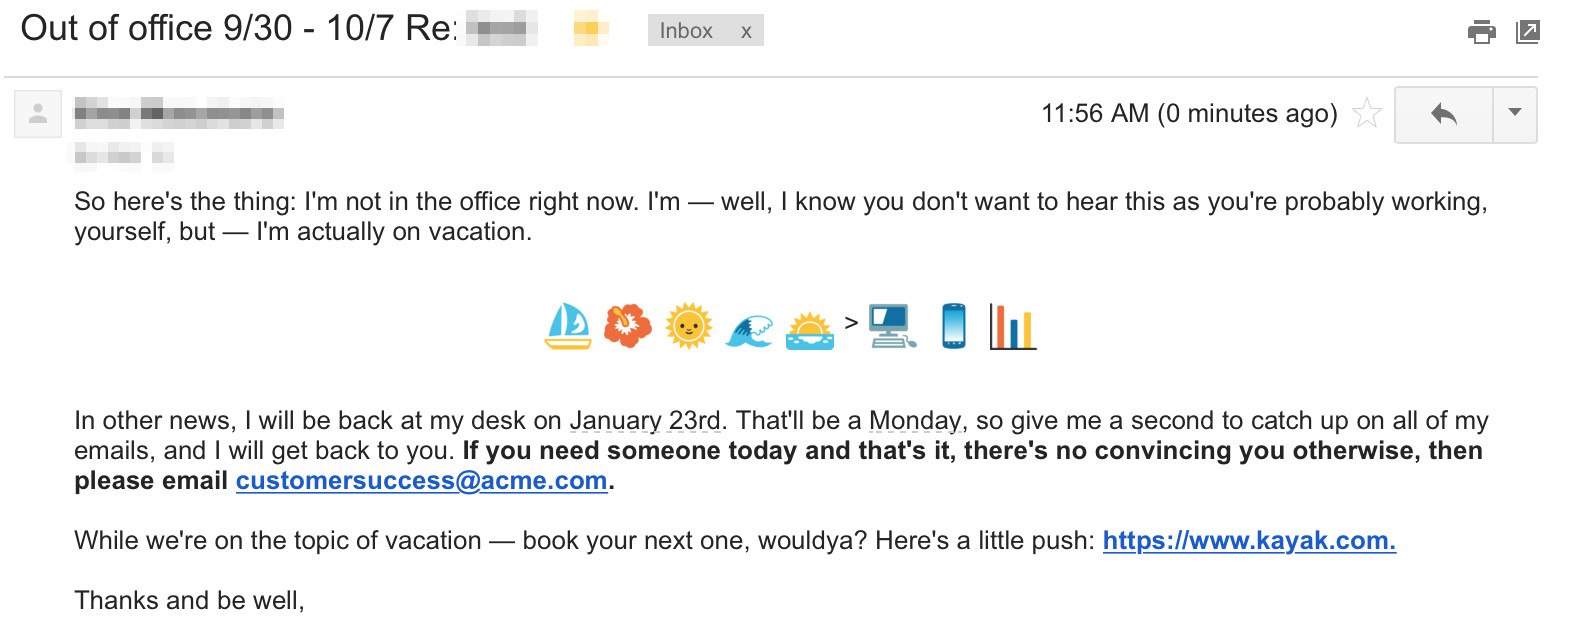 out of office examples